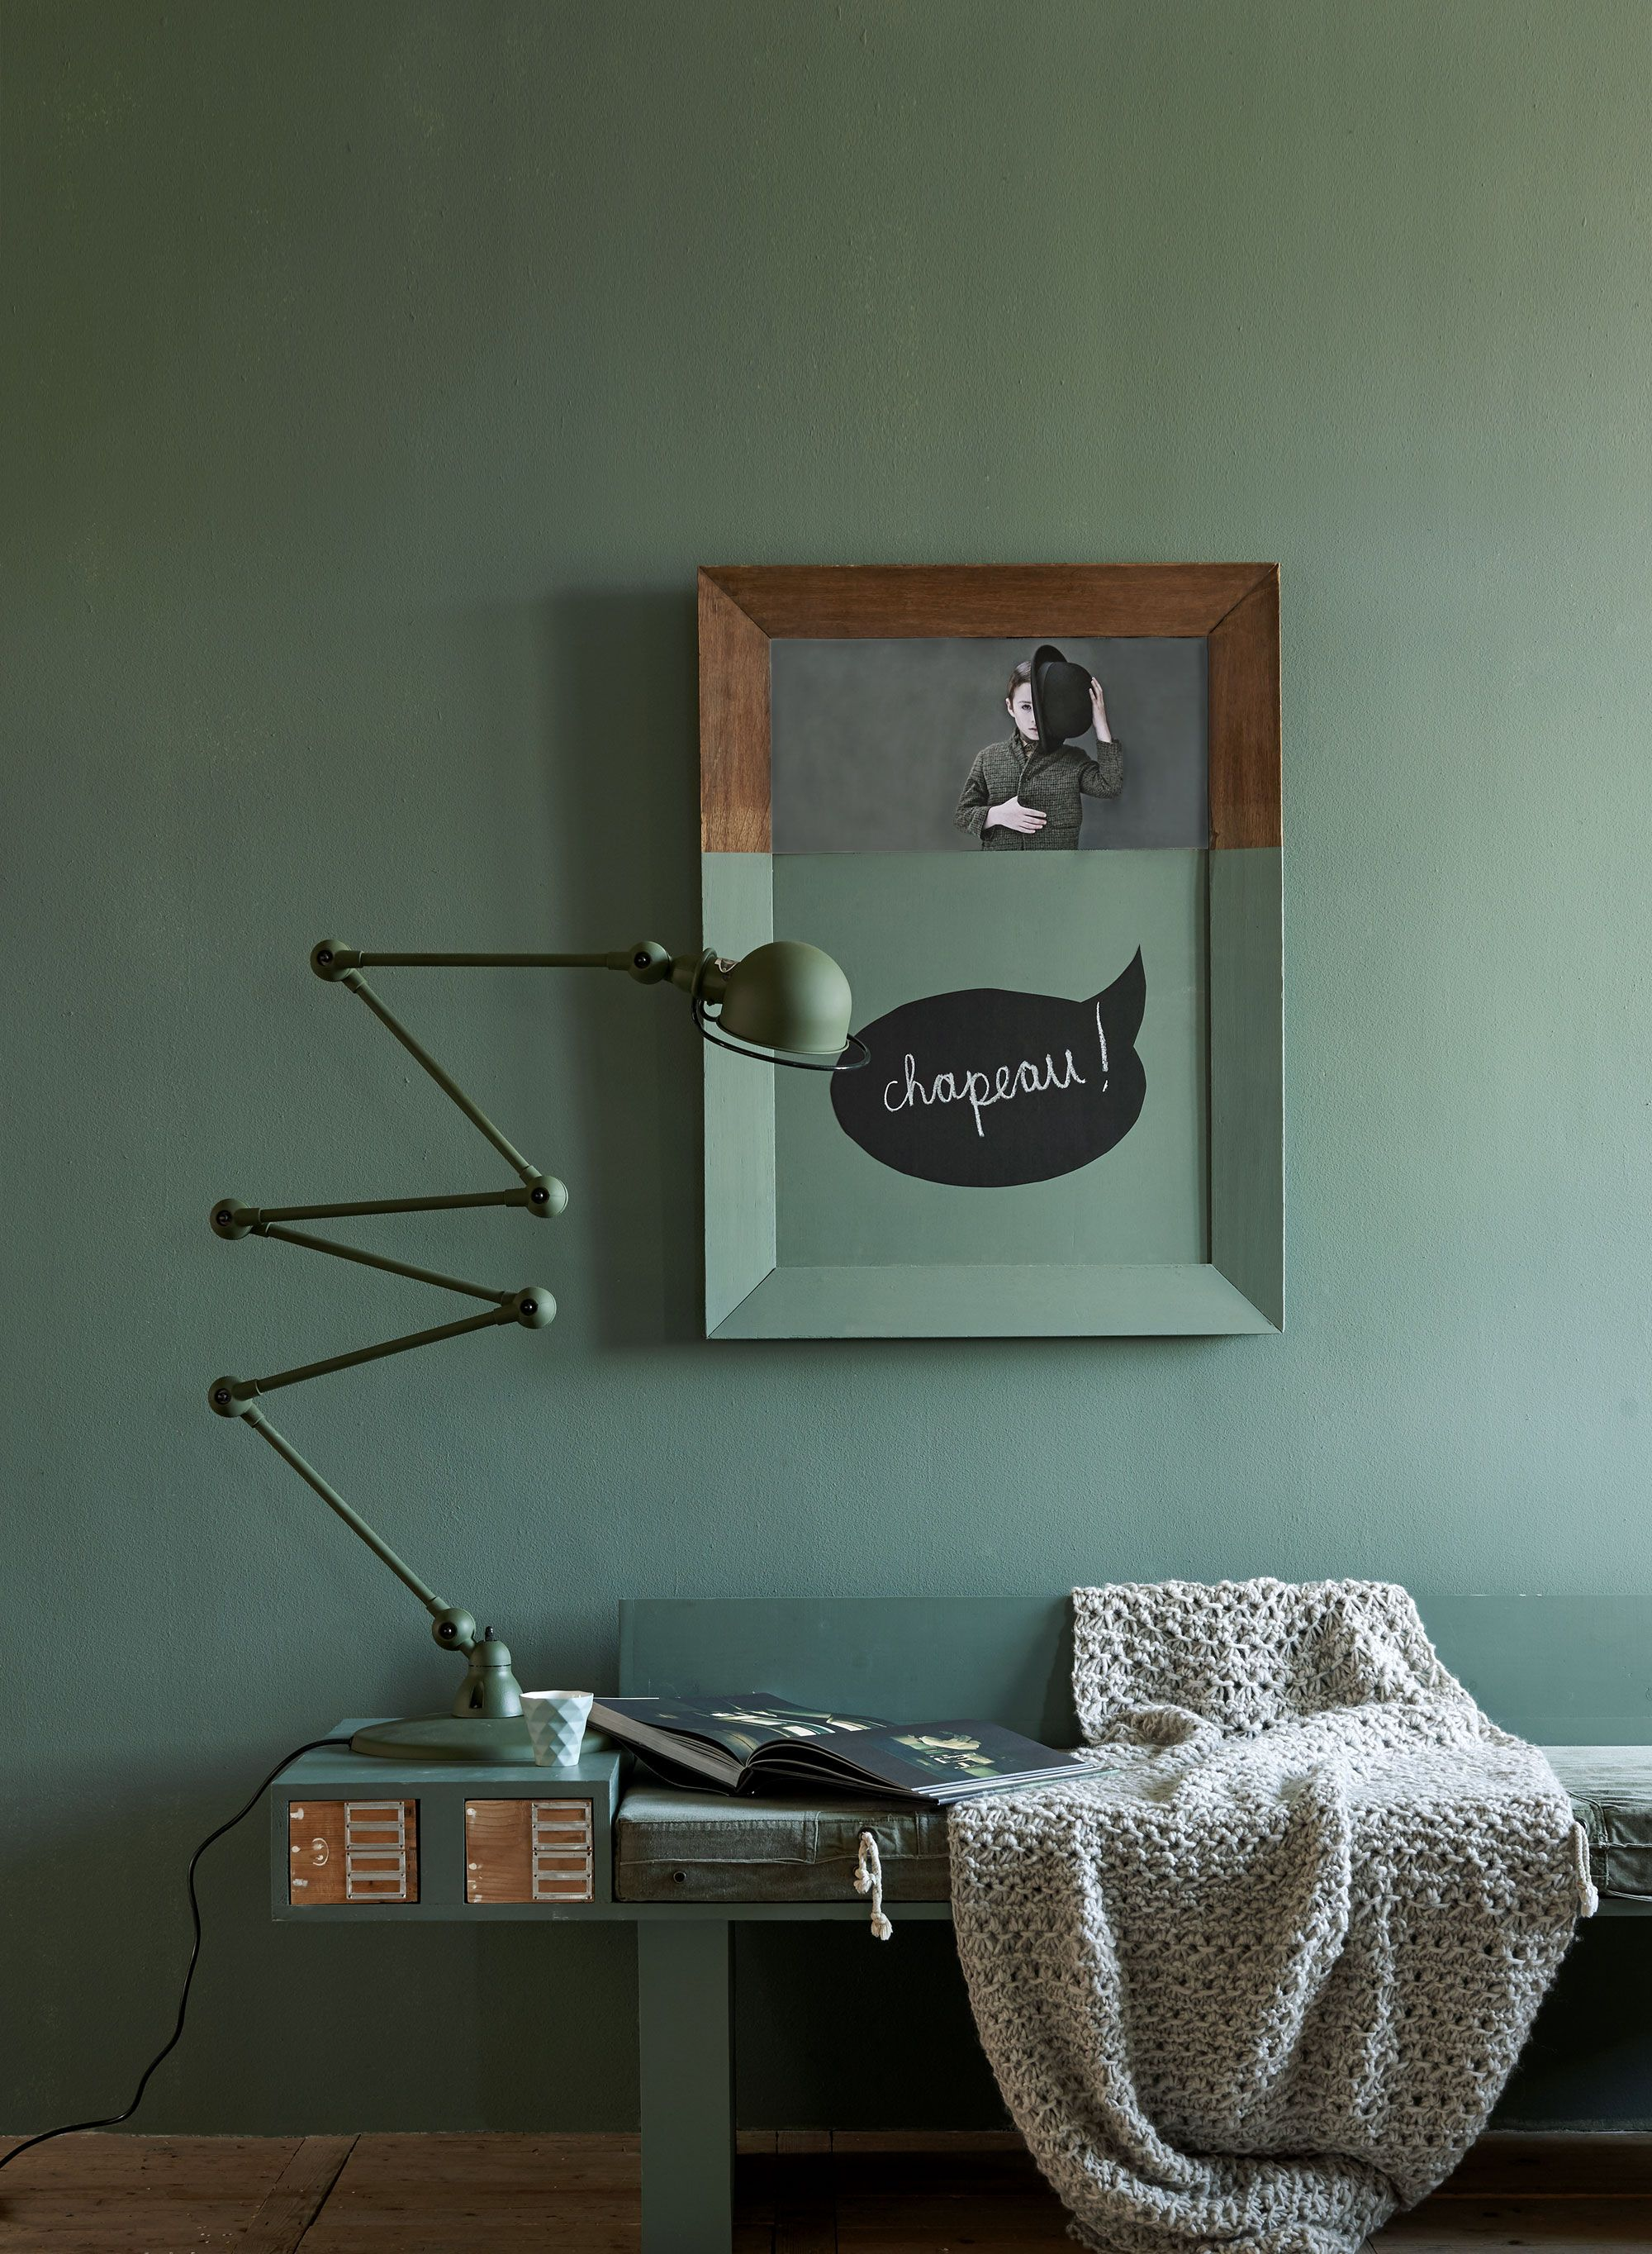 green wall with half painted frame and green desk lamp photographer dennis brandsma james. Black Bedroom Furniture Sets. Home Design Ideas